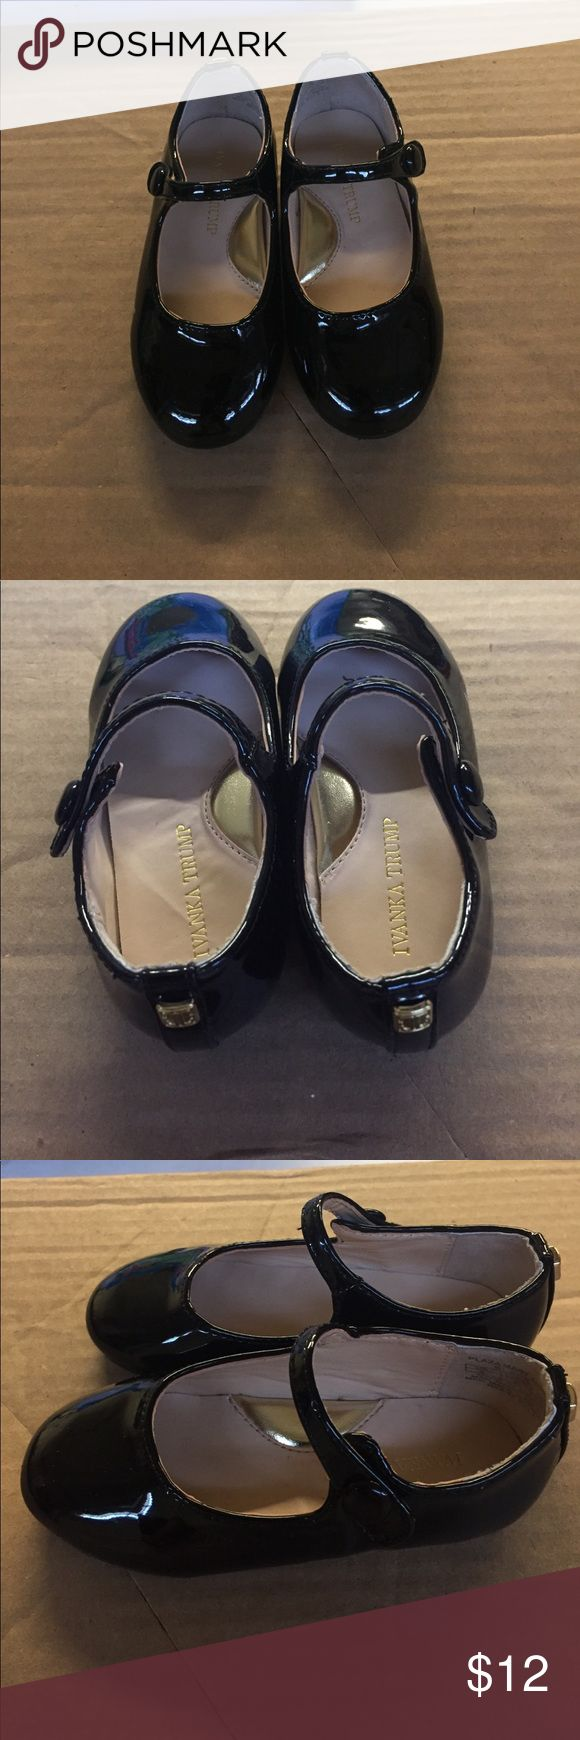 Ivanka Trump patent dress shoes Brand new. Perfect for any special occasions. Ivanka Trump Shoes Dress Shoes